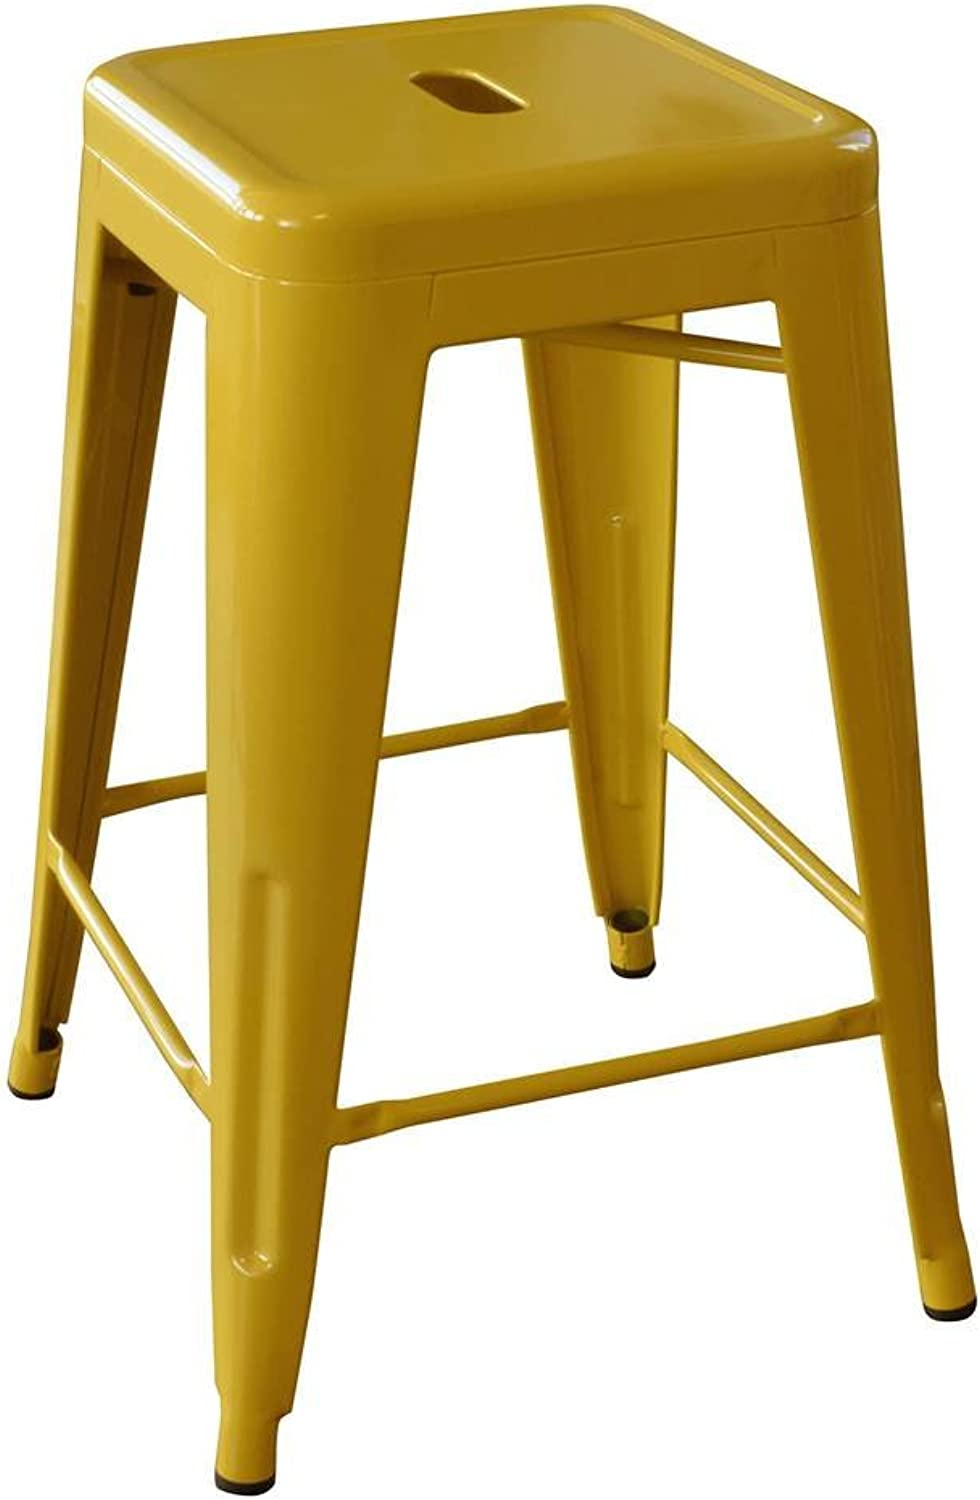 AmeriHome Loft gold 24 Inch Metal Bar Stool BS24goldS